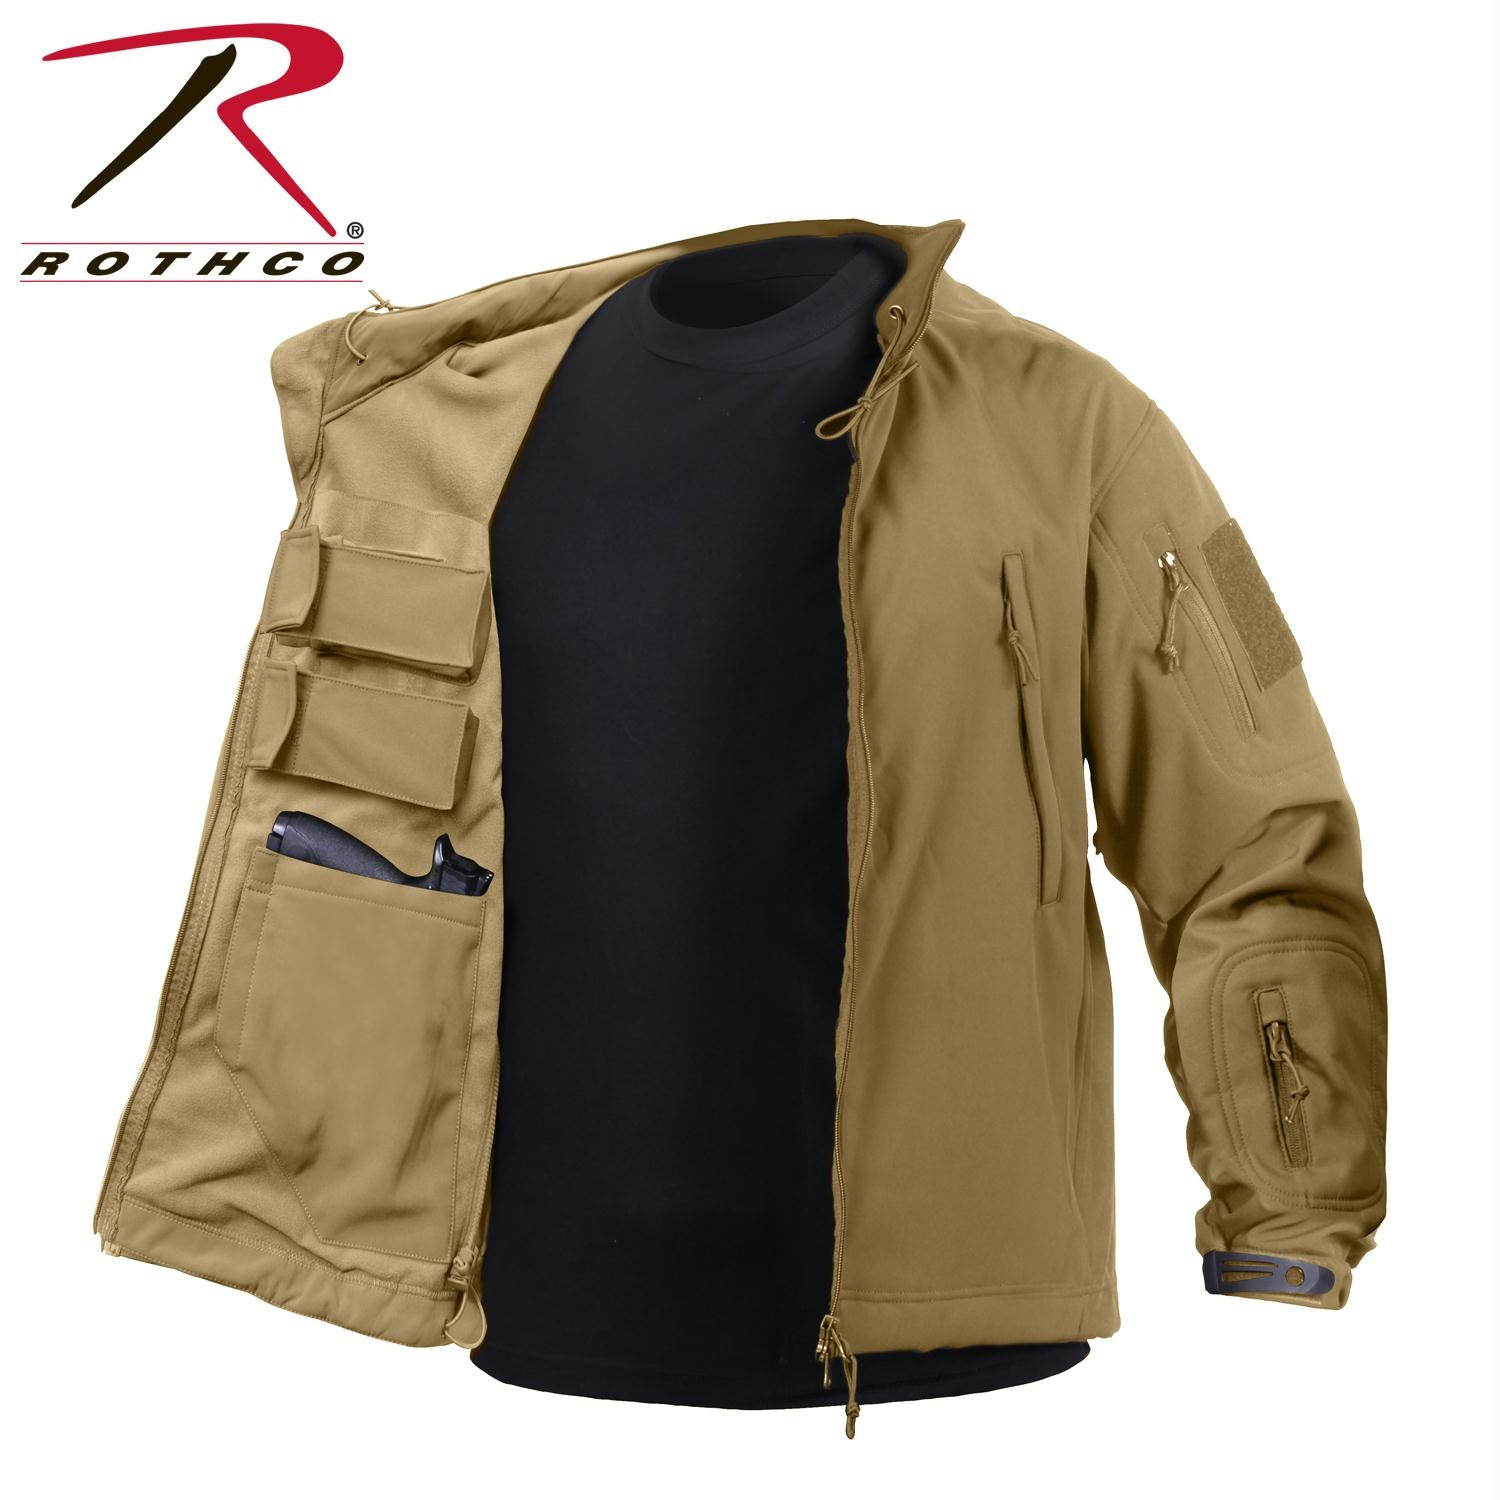 Rothco Concealed Carry Soft Shell Jacket - Coyote Brown / S